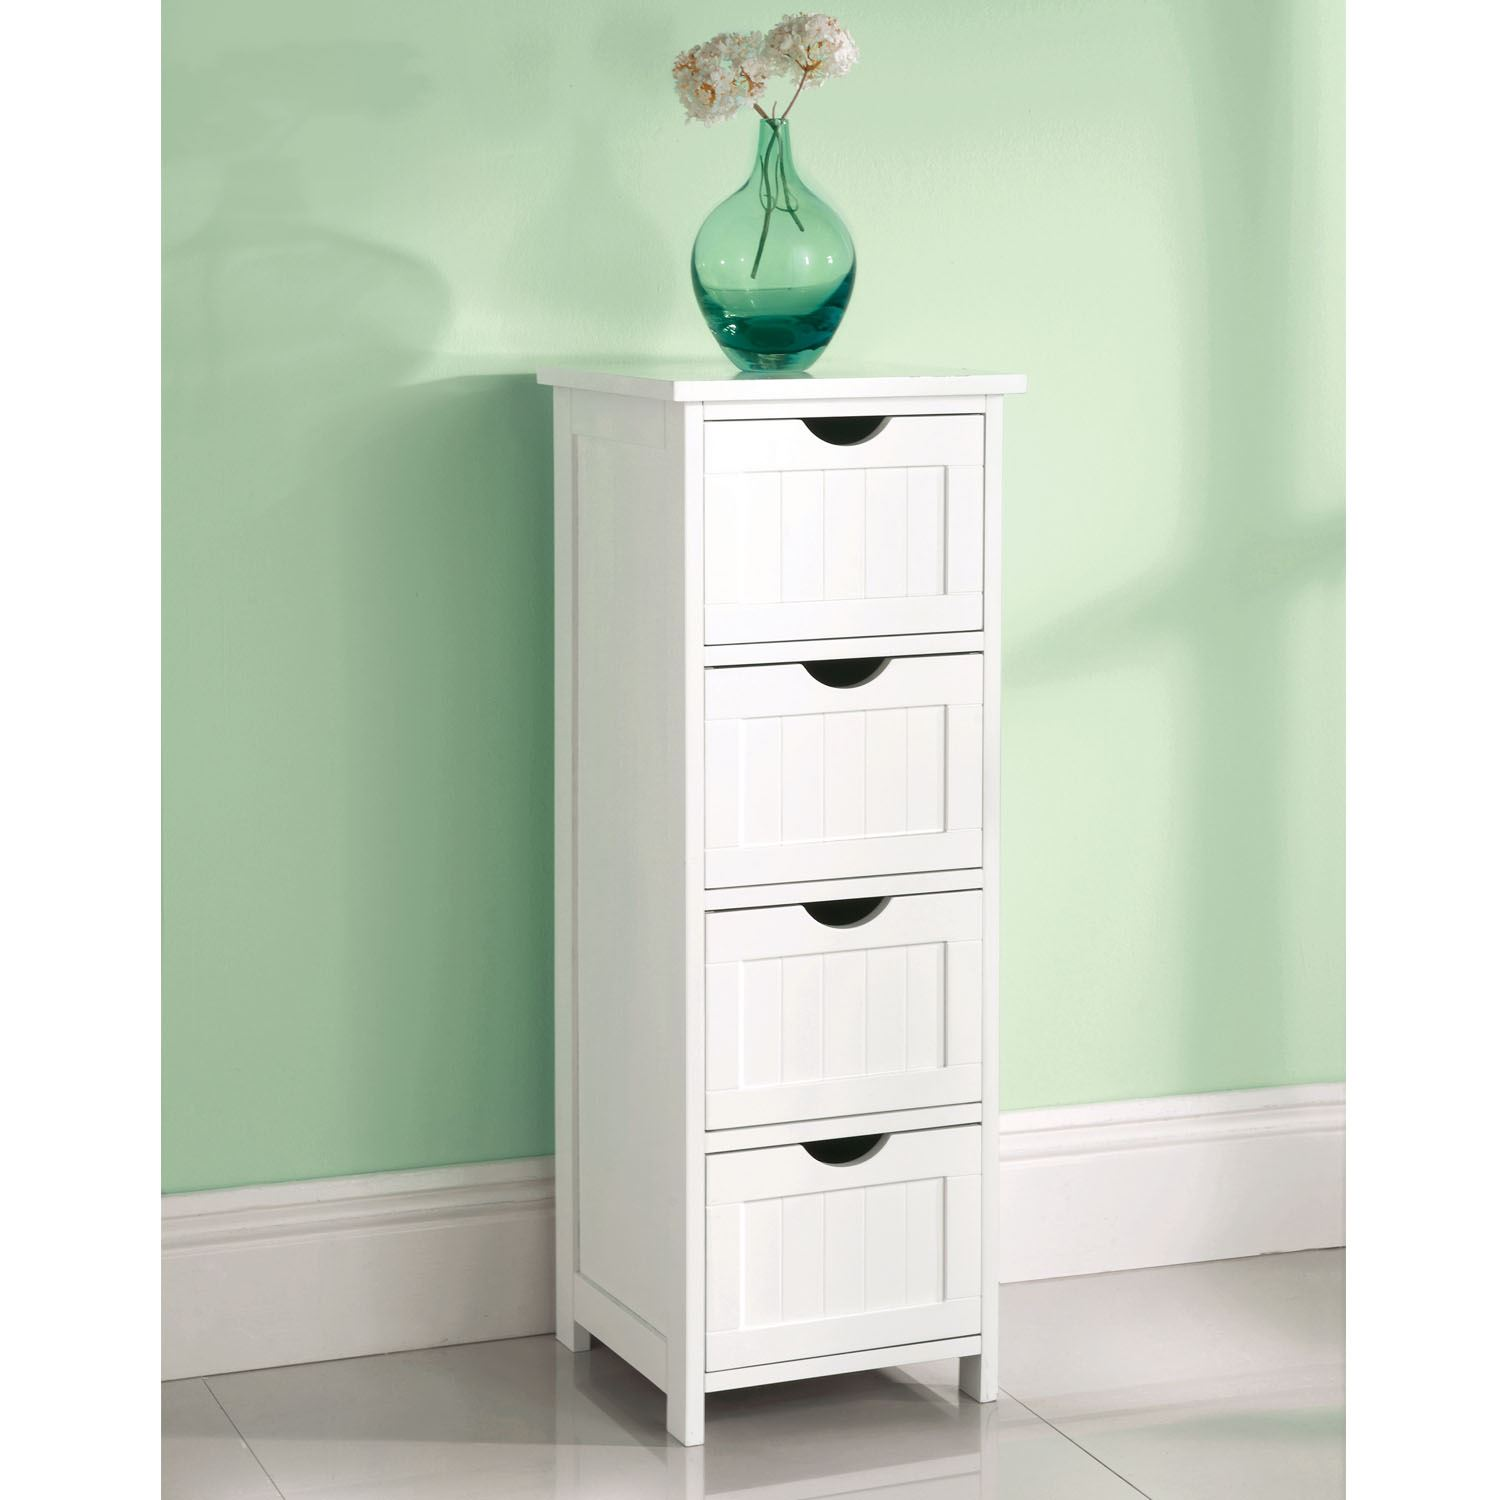 White Wood Free Standing Bathroom Storage Cabinet Unit White Wooden Bathroom Cabinet Shelf